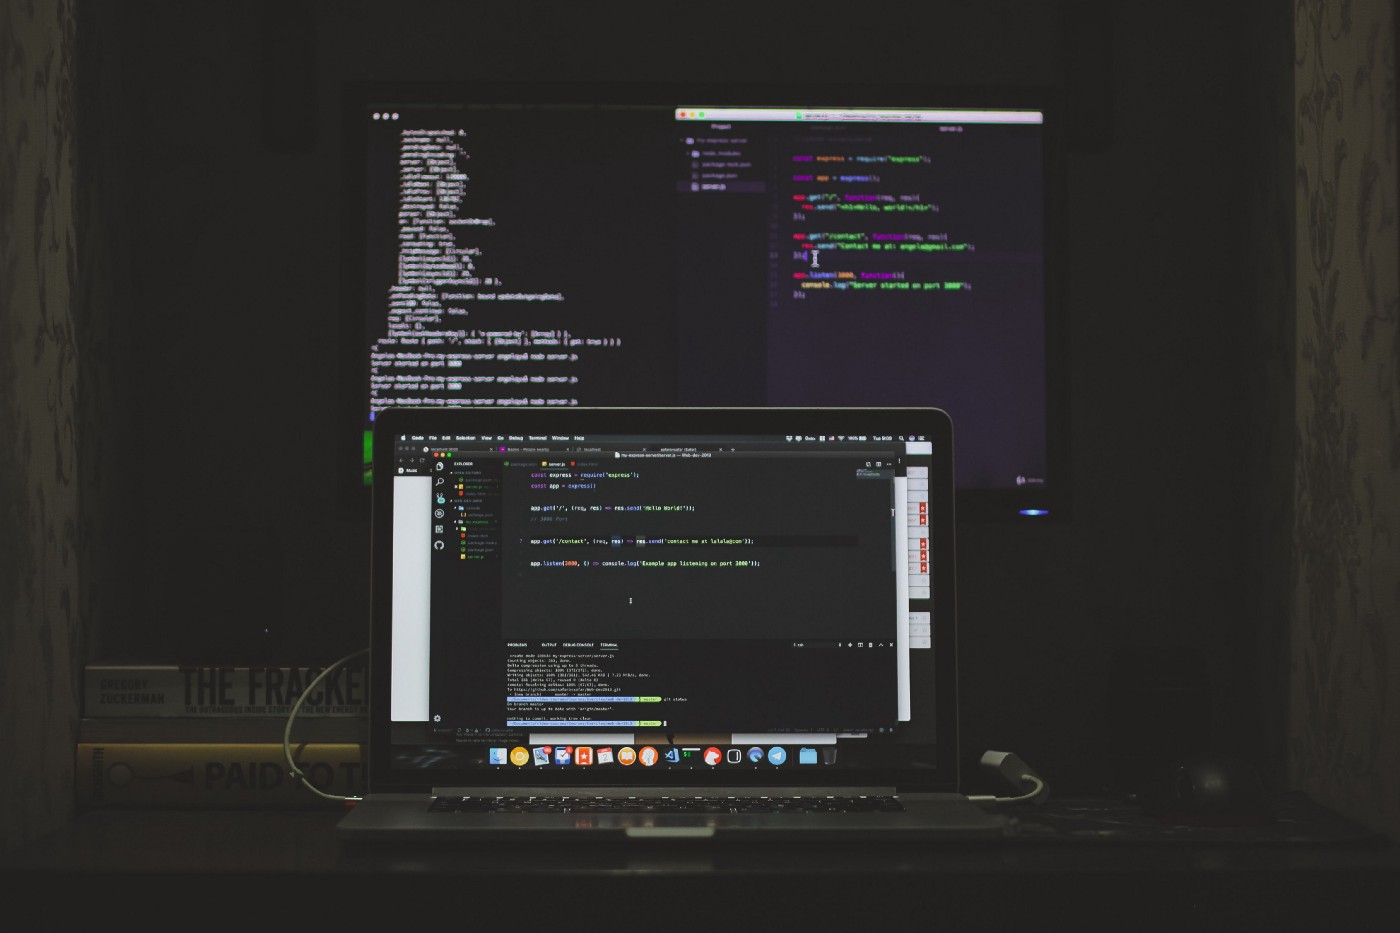 MacBook Pro and JavaScript code